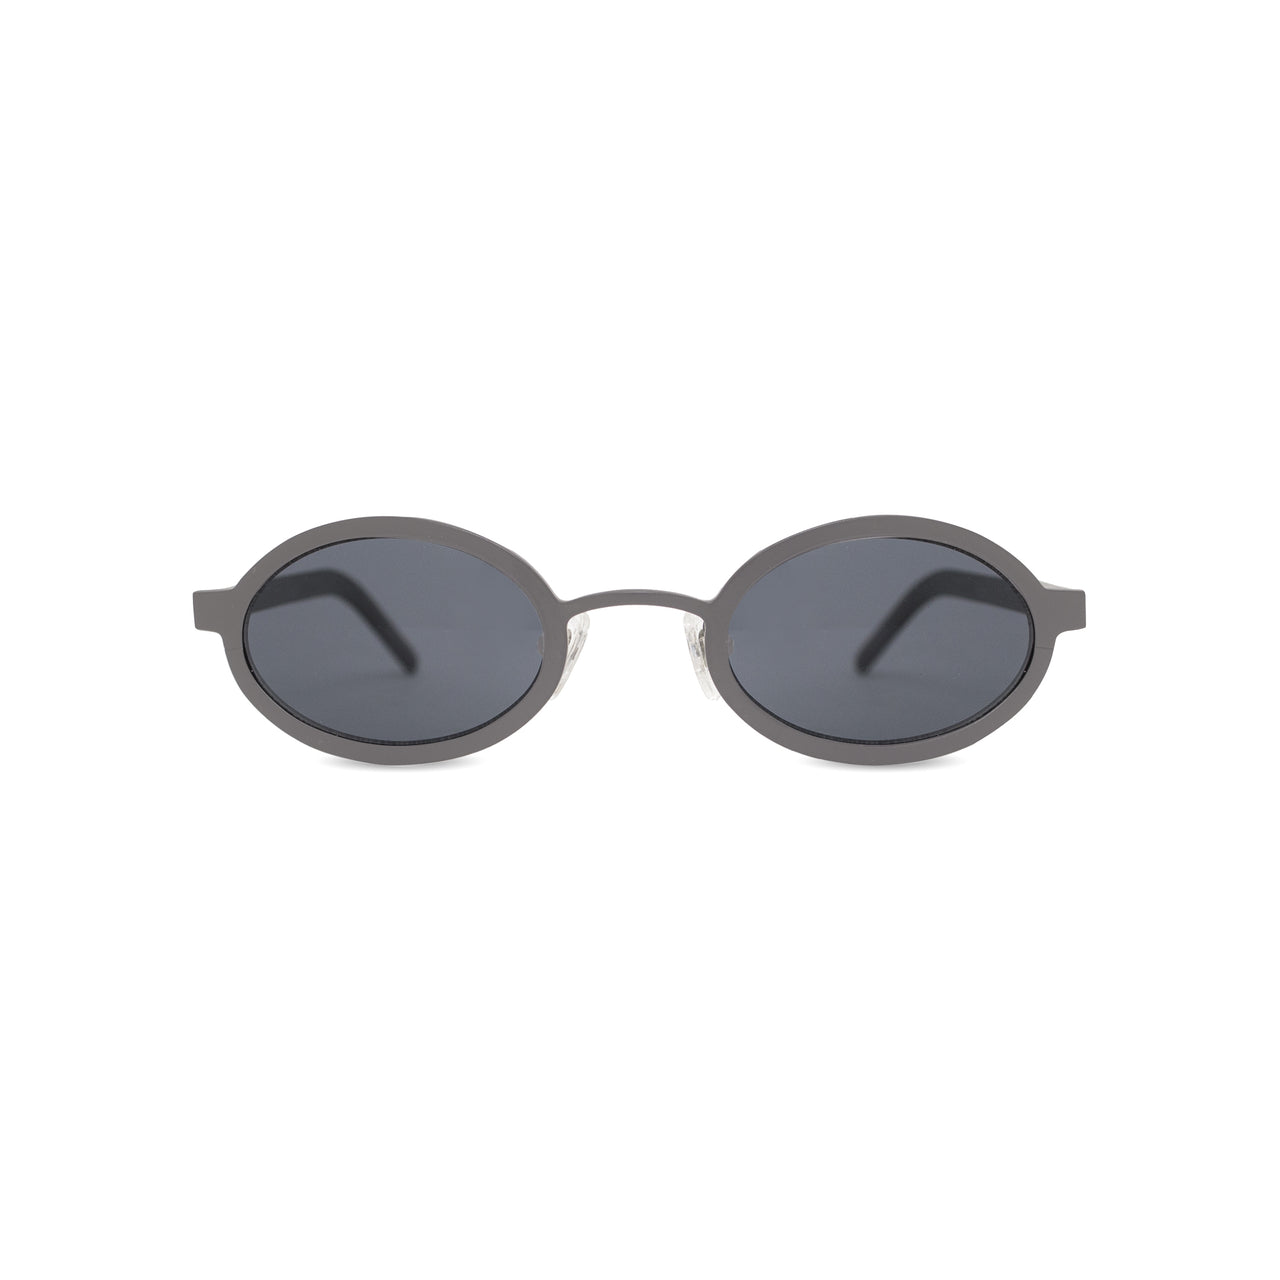 Metal. Brushed Silver. Black Lens. - BLYSZAK eyewear eyewear - eyewear, optical, sunglasses